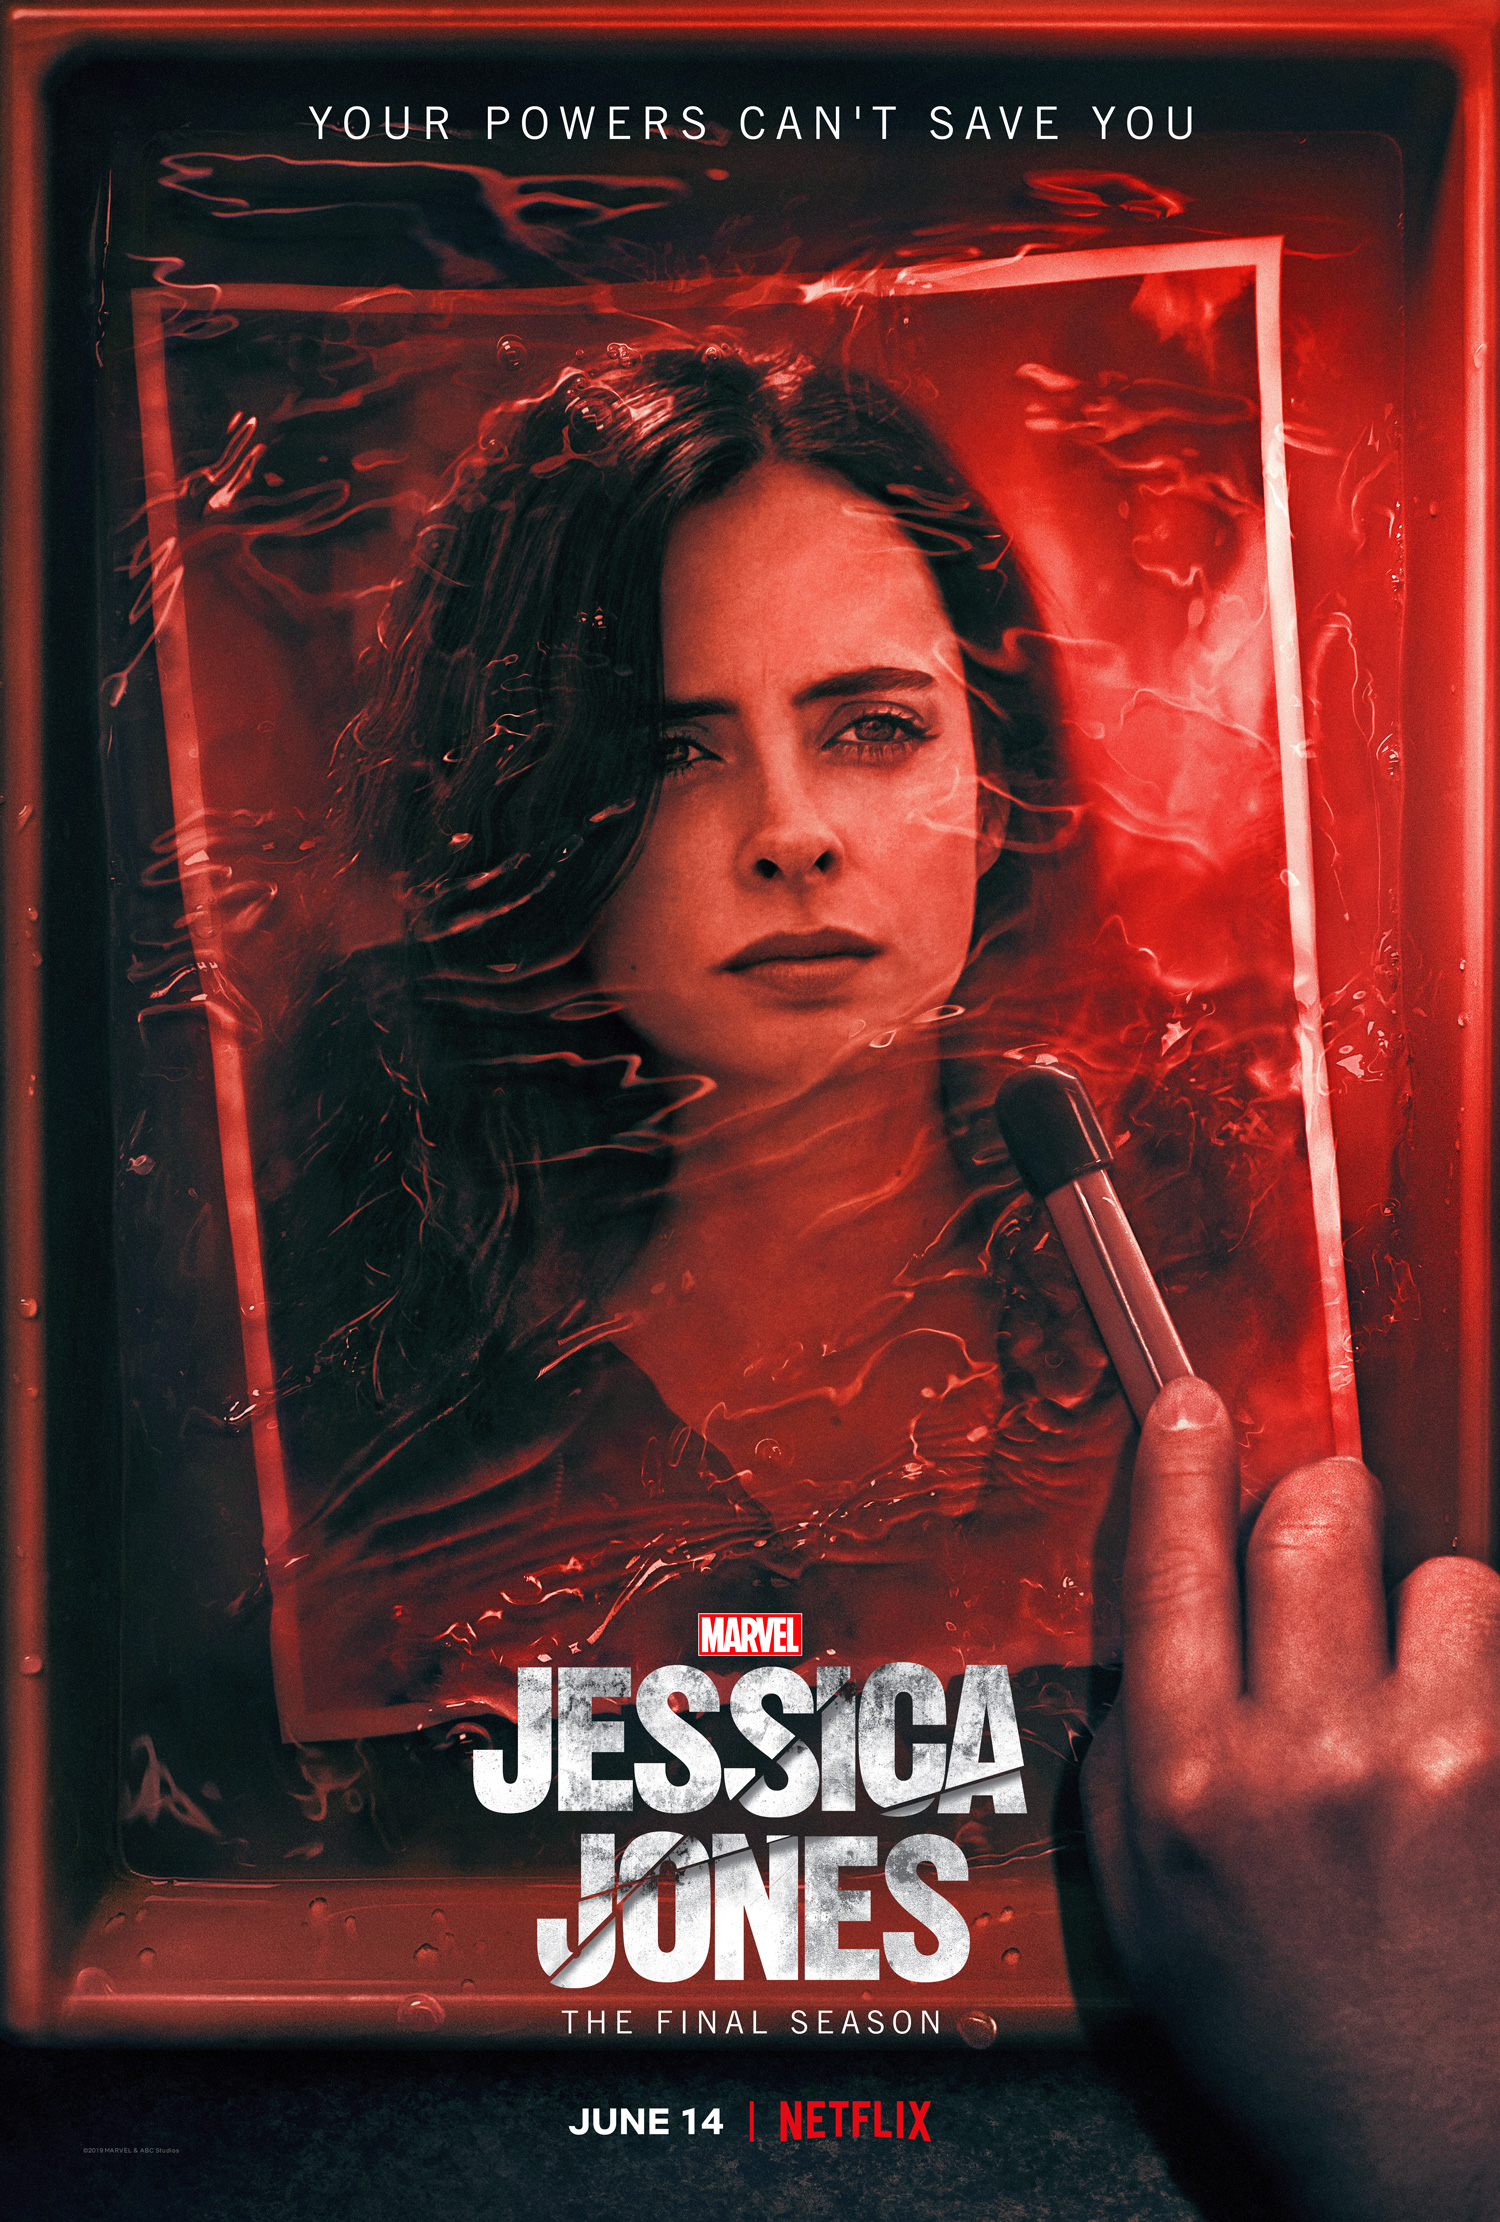 Marvel's Jessica Jones Season 1 2015-2019 Hindi-English Dual Audio 13 Episodes 3.7GB